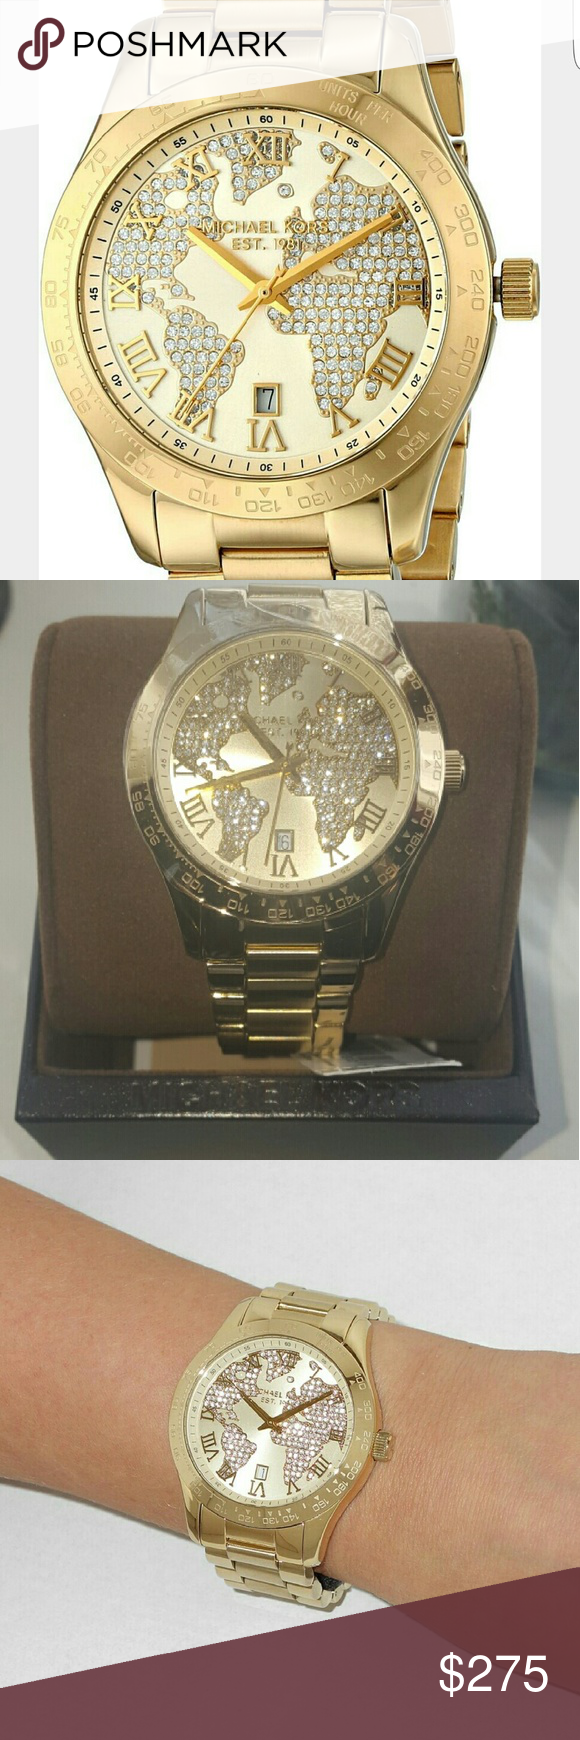 Mk rose gold tone watch nwt stainless steel bracelet bracelet michael kors womens layton gold bracelet watch gold tone dial with pav world map new never been worn tag is still attached i do have the box 44mm mk5959 gumiabroncs Choice Image